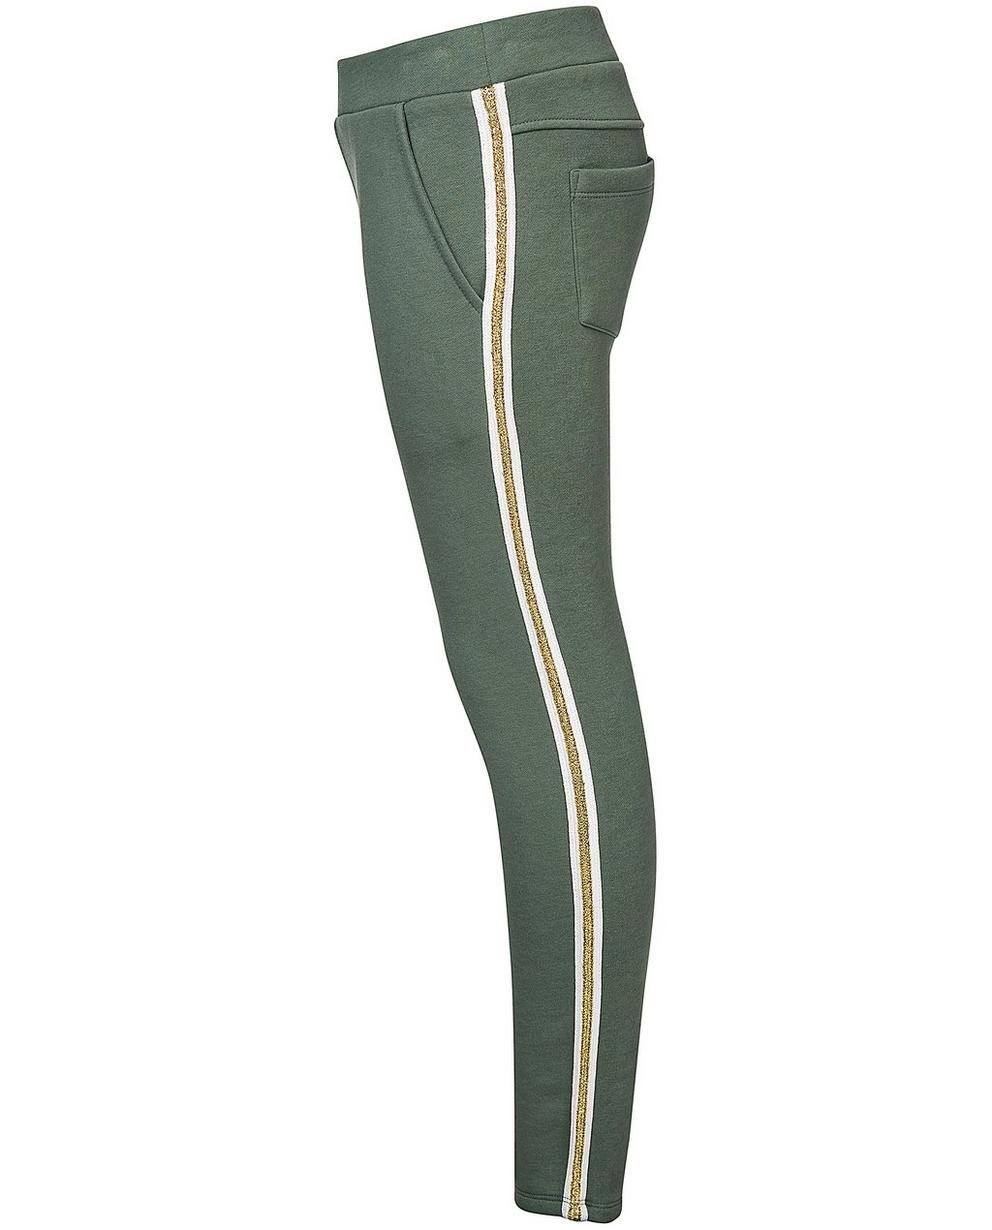 Pantalons - dark green - Pantalon molletonné